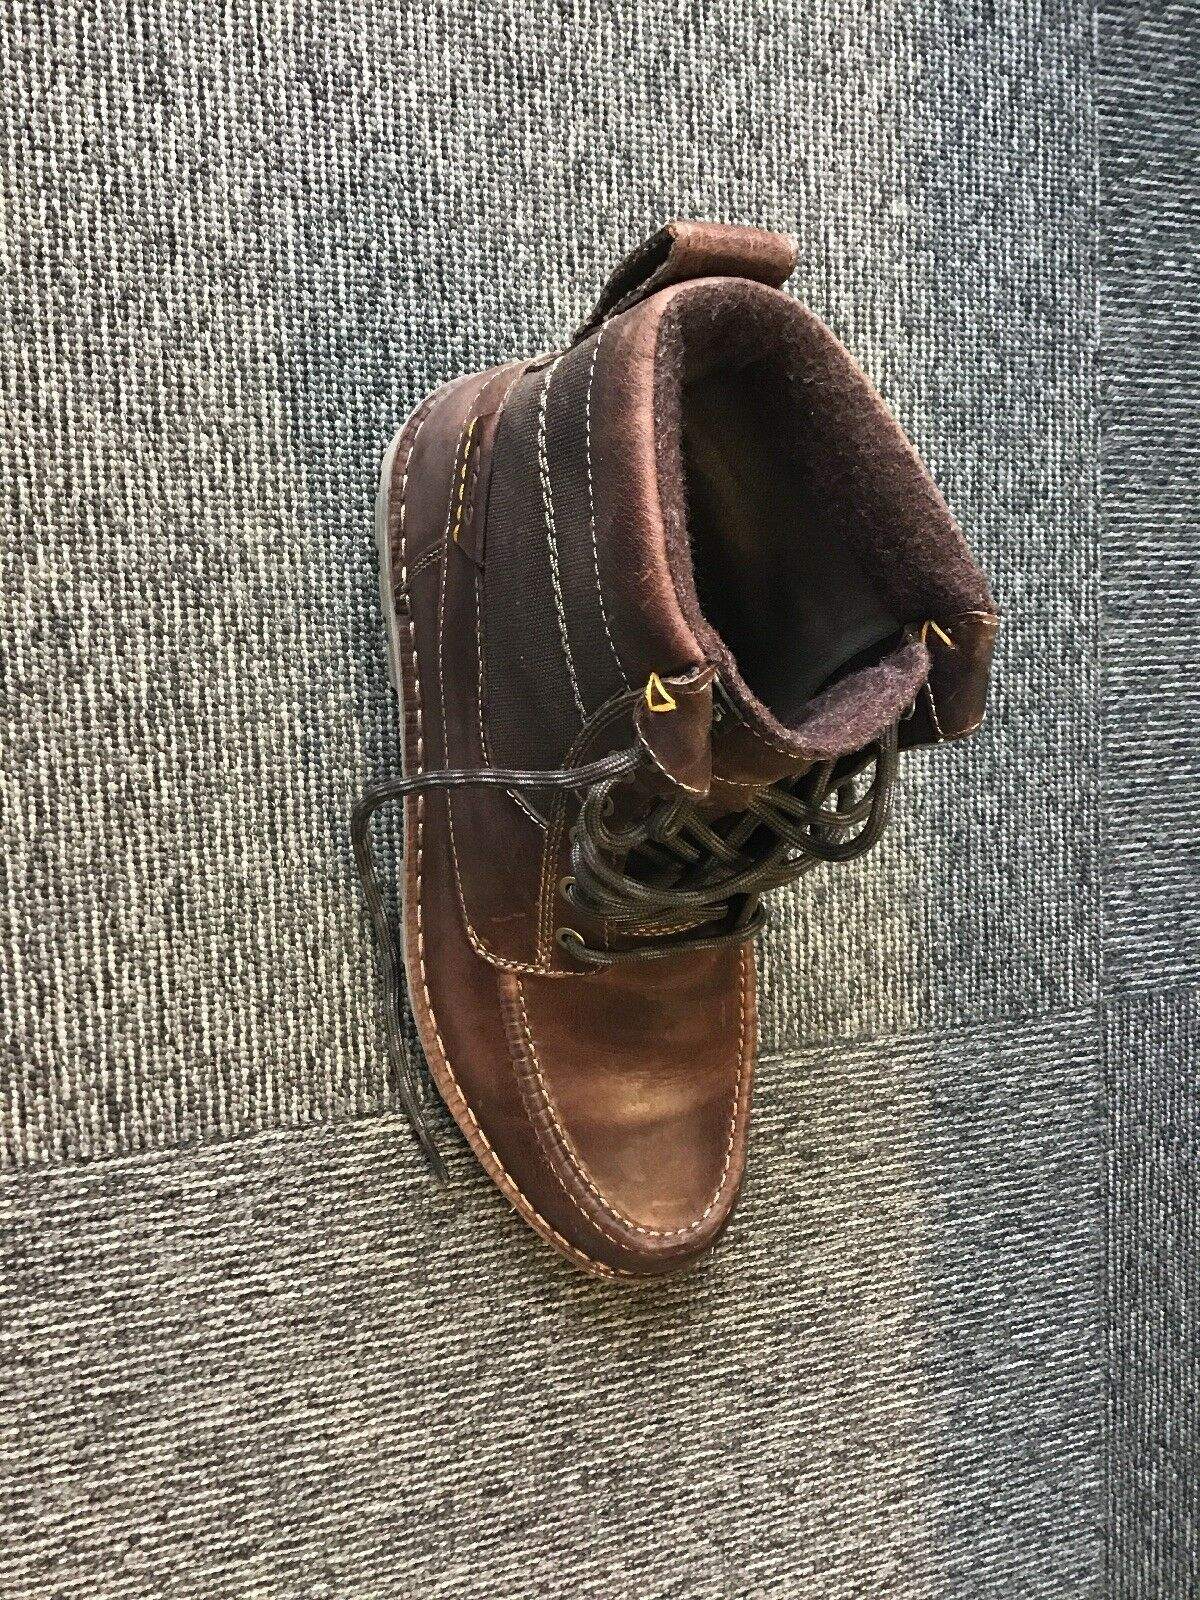 Original Clarks Shoes. New, Barely Worn. Bought From My Trip To The Unitd States